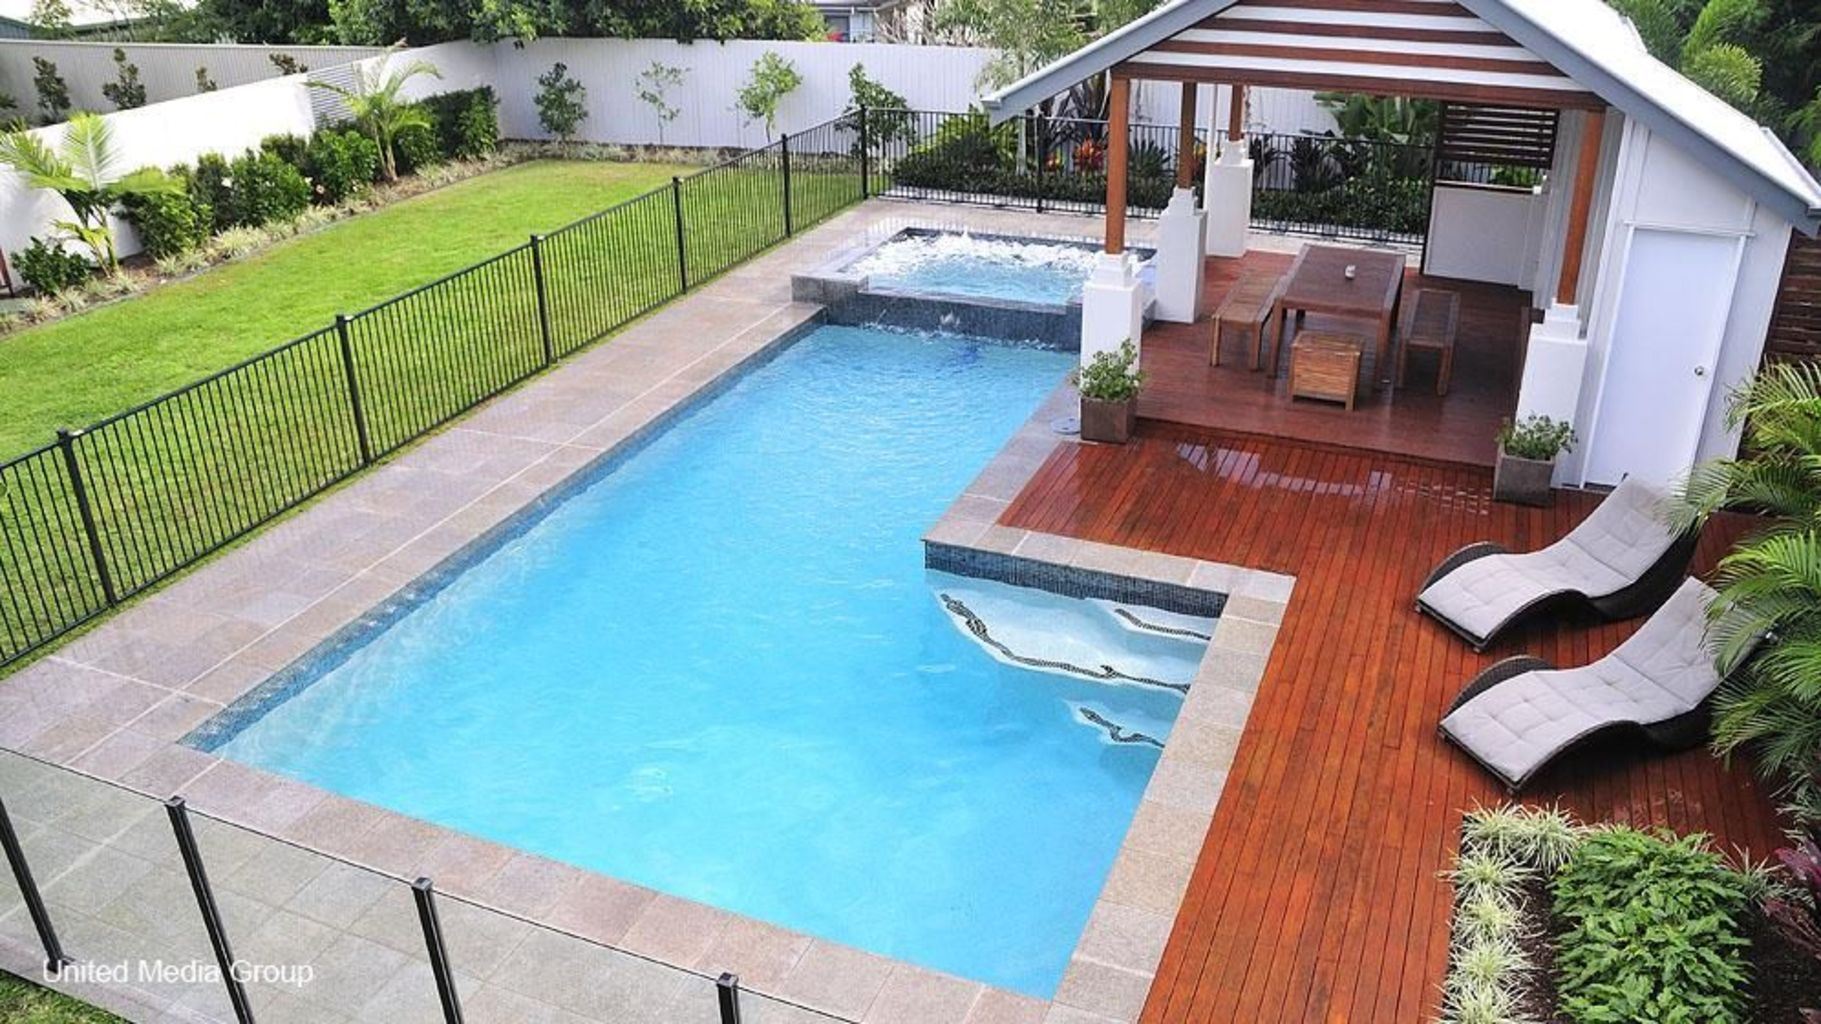 Small swimming pools made for small spaces and tight budgets Part 27